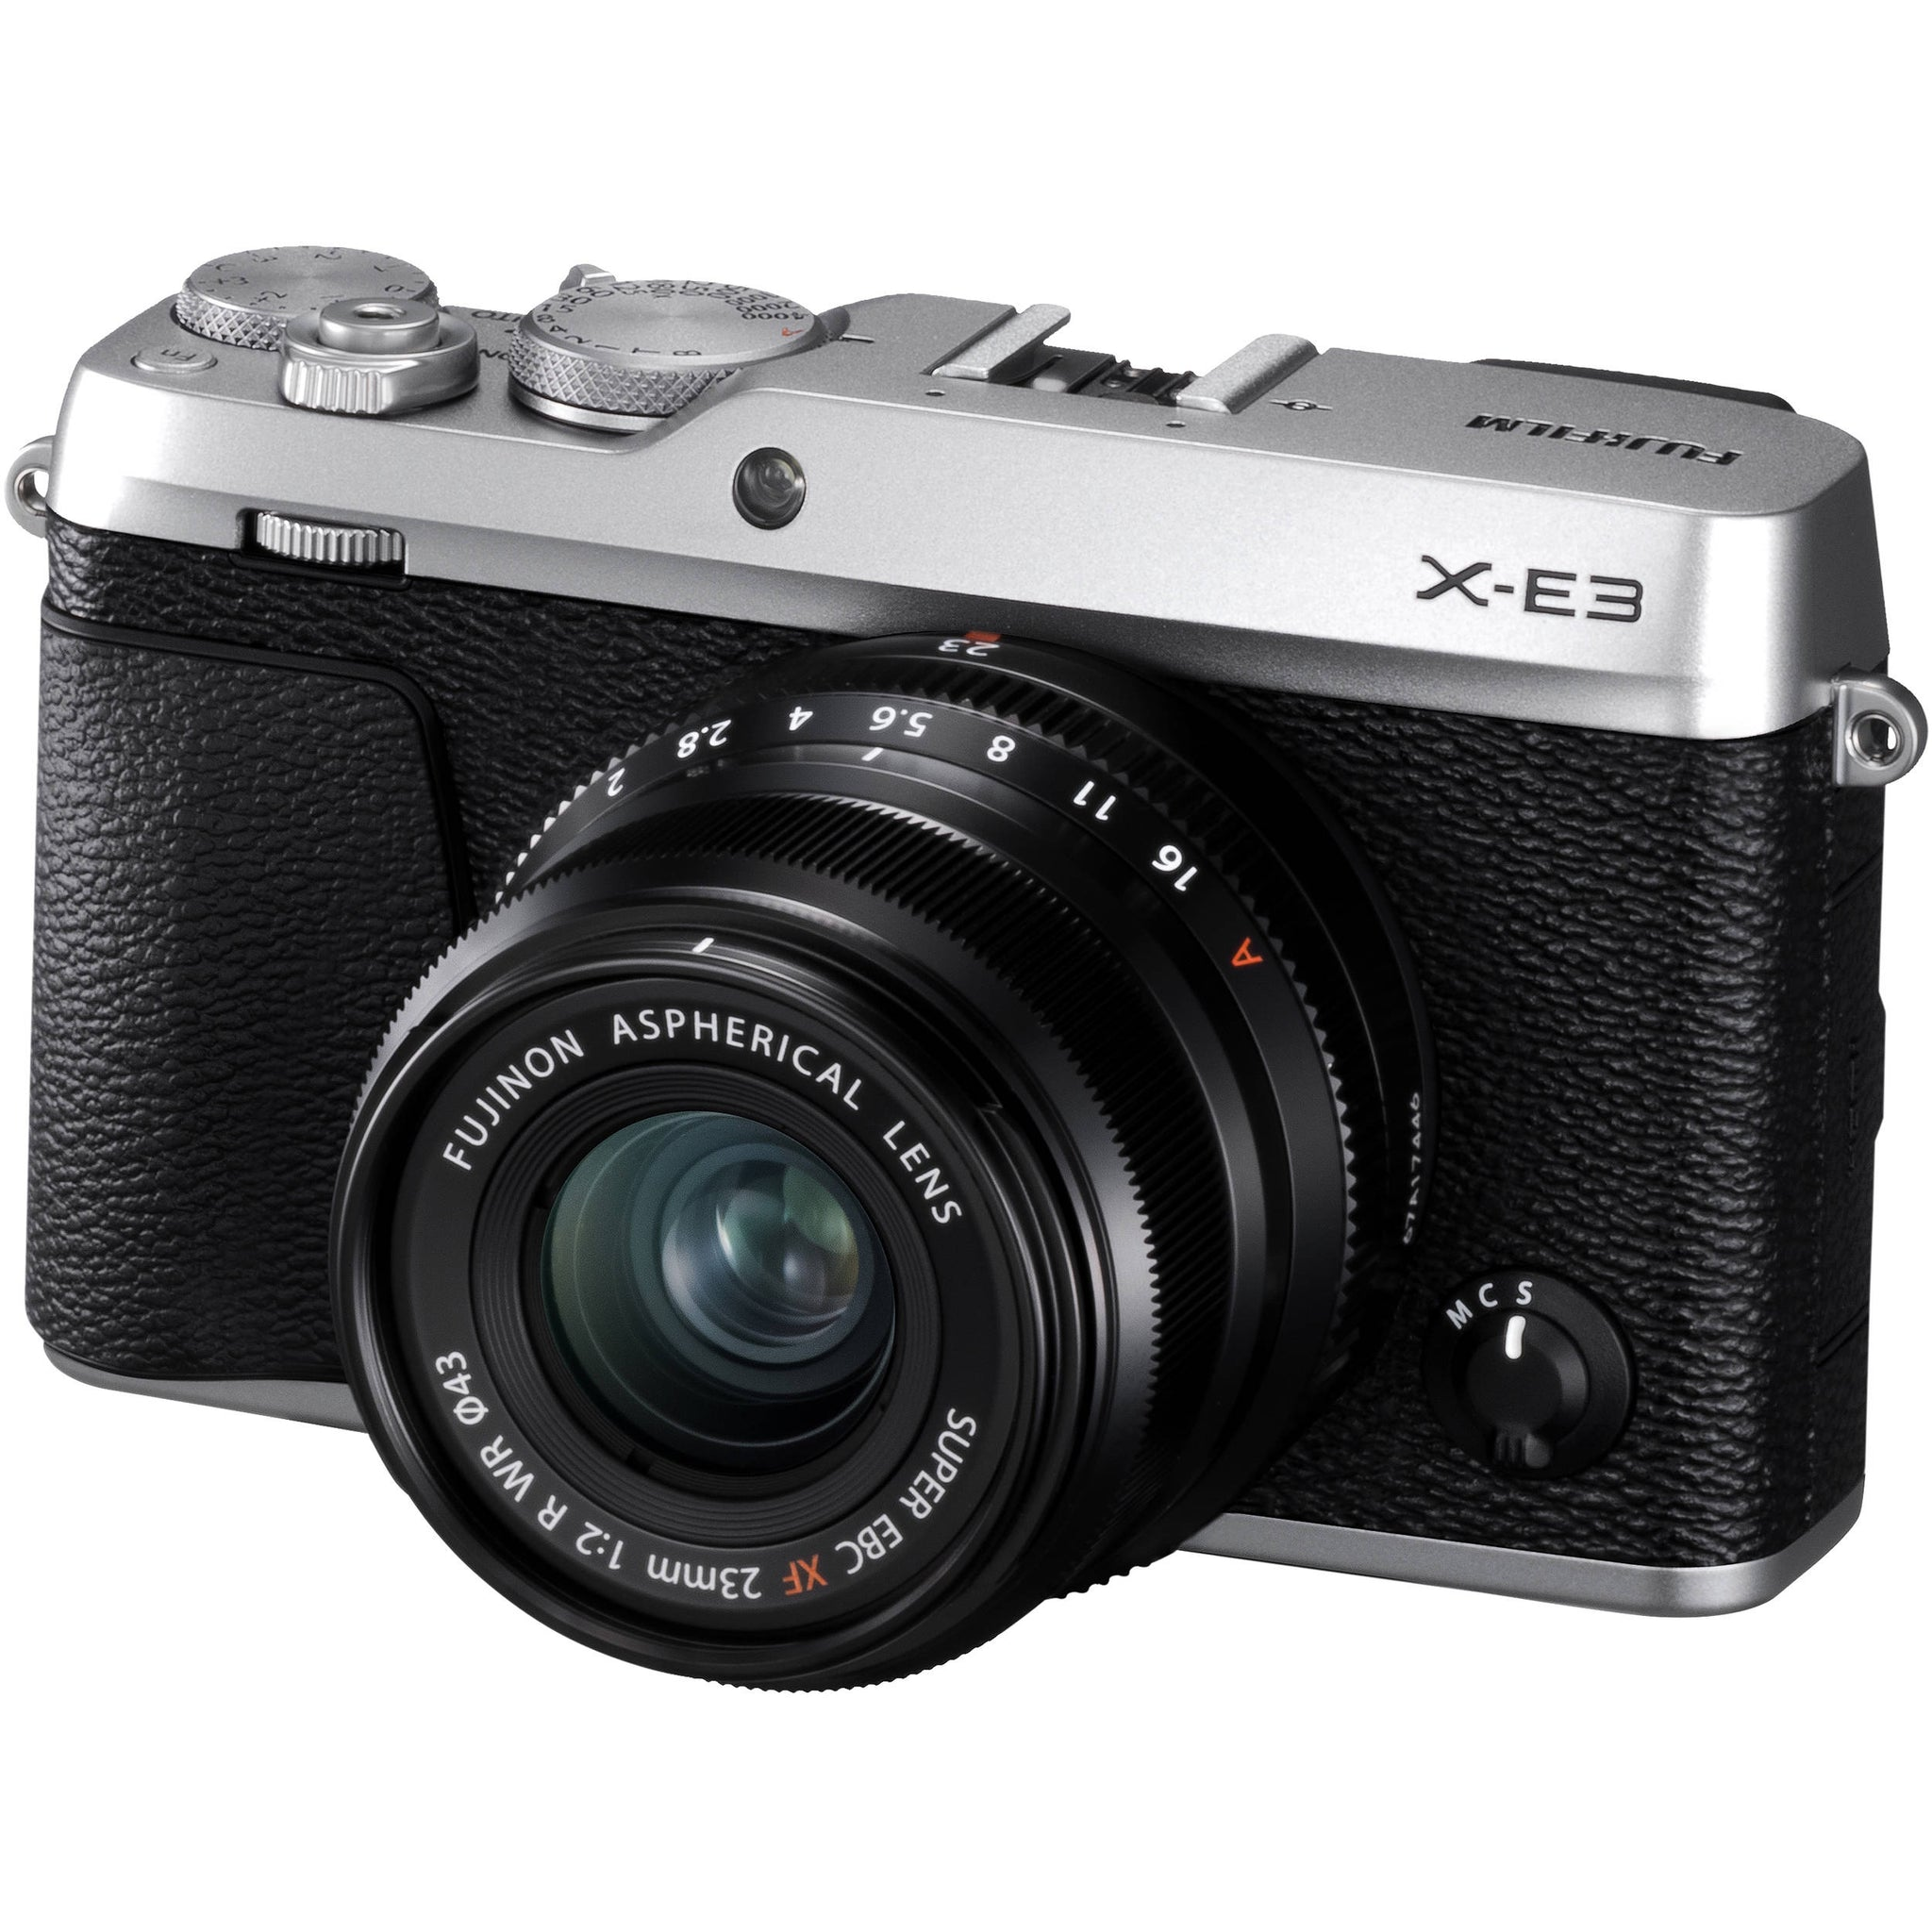 FUJIFILM X-E3 Mirrorless Digital Camera with 23mm f/2 Lens (Silver)